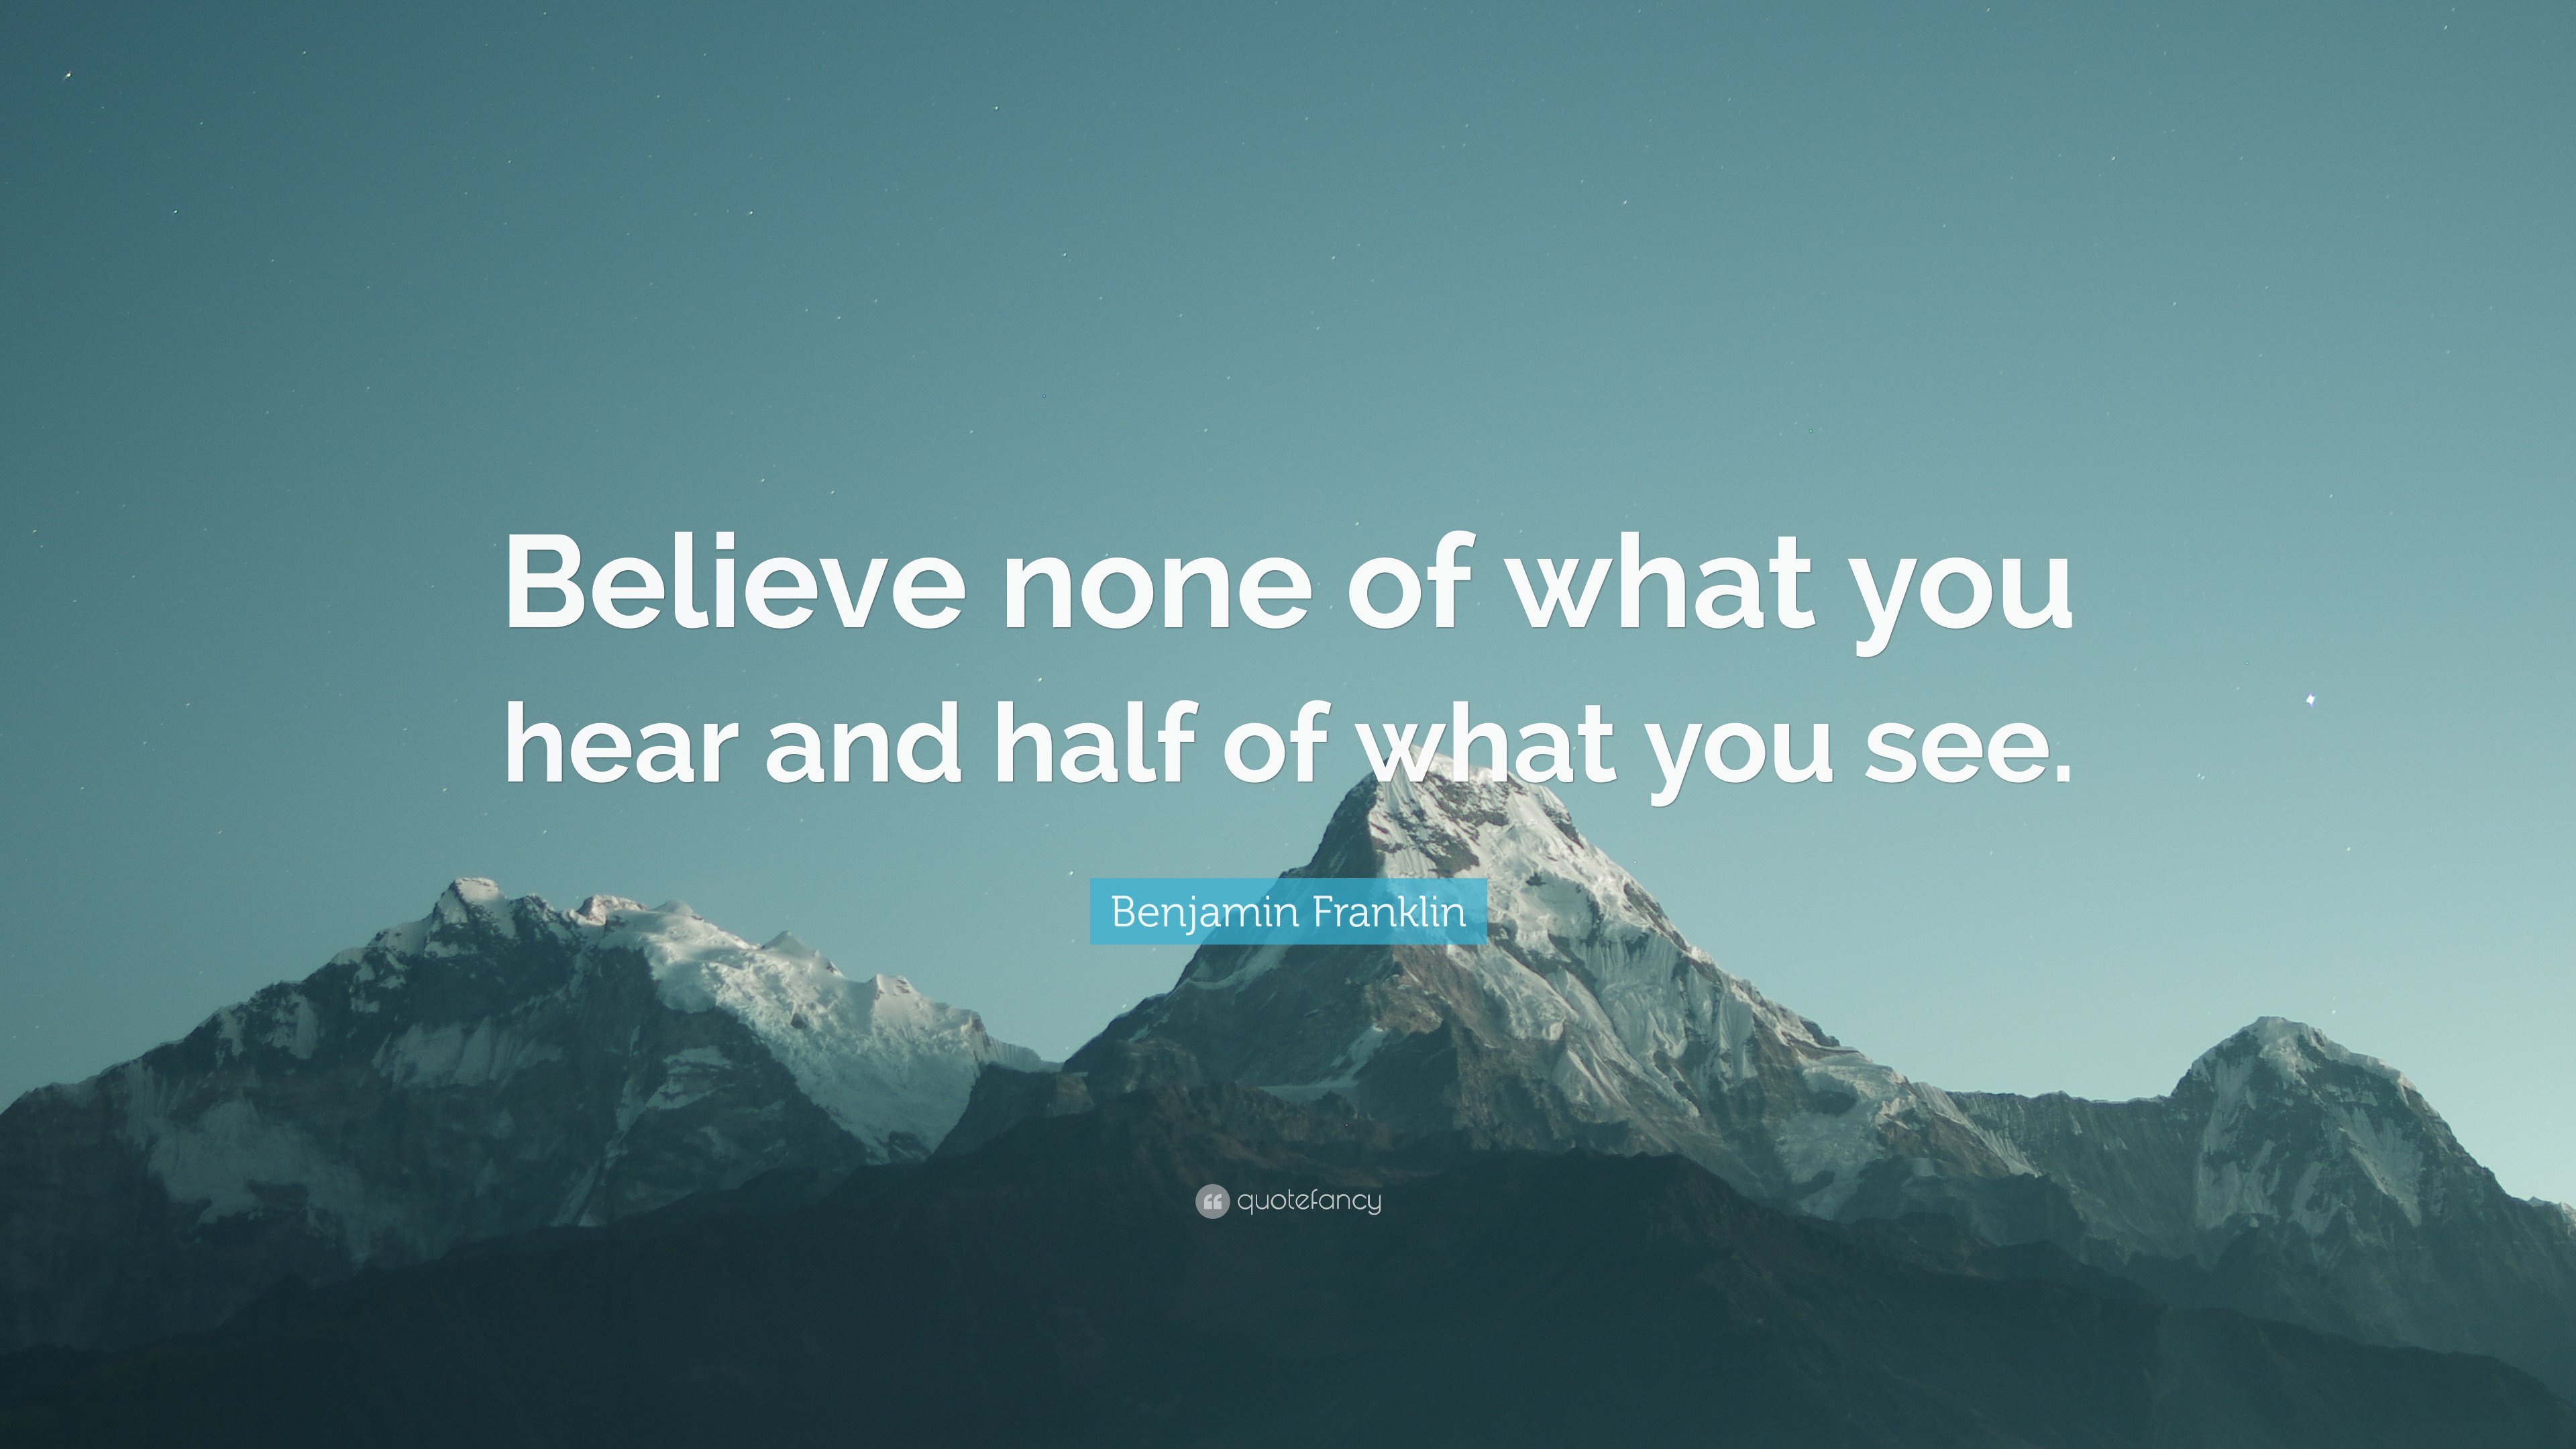 Benjamin Franklin Quote Believe None Of What You Hear And Half Of